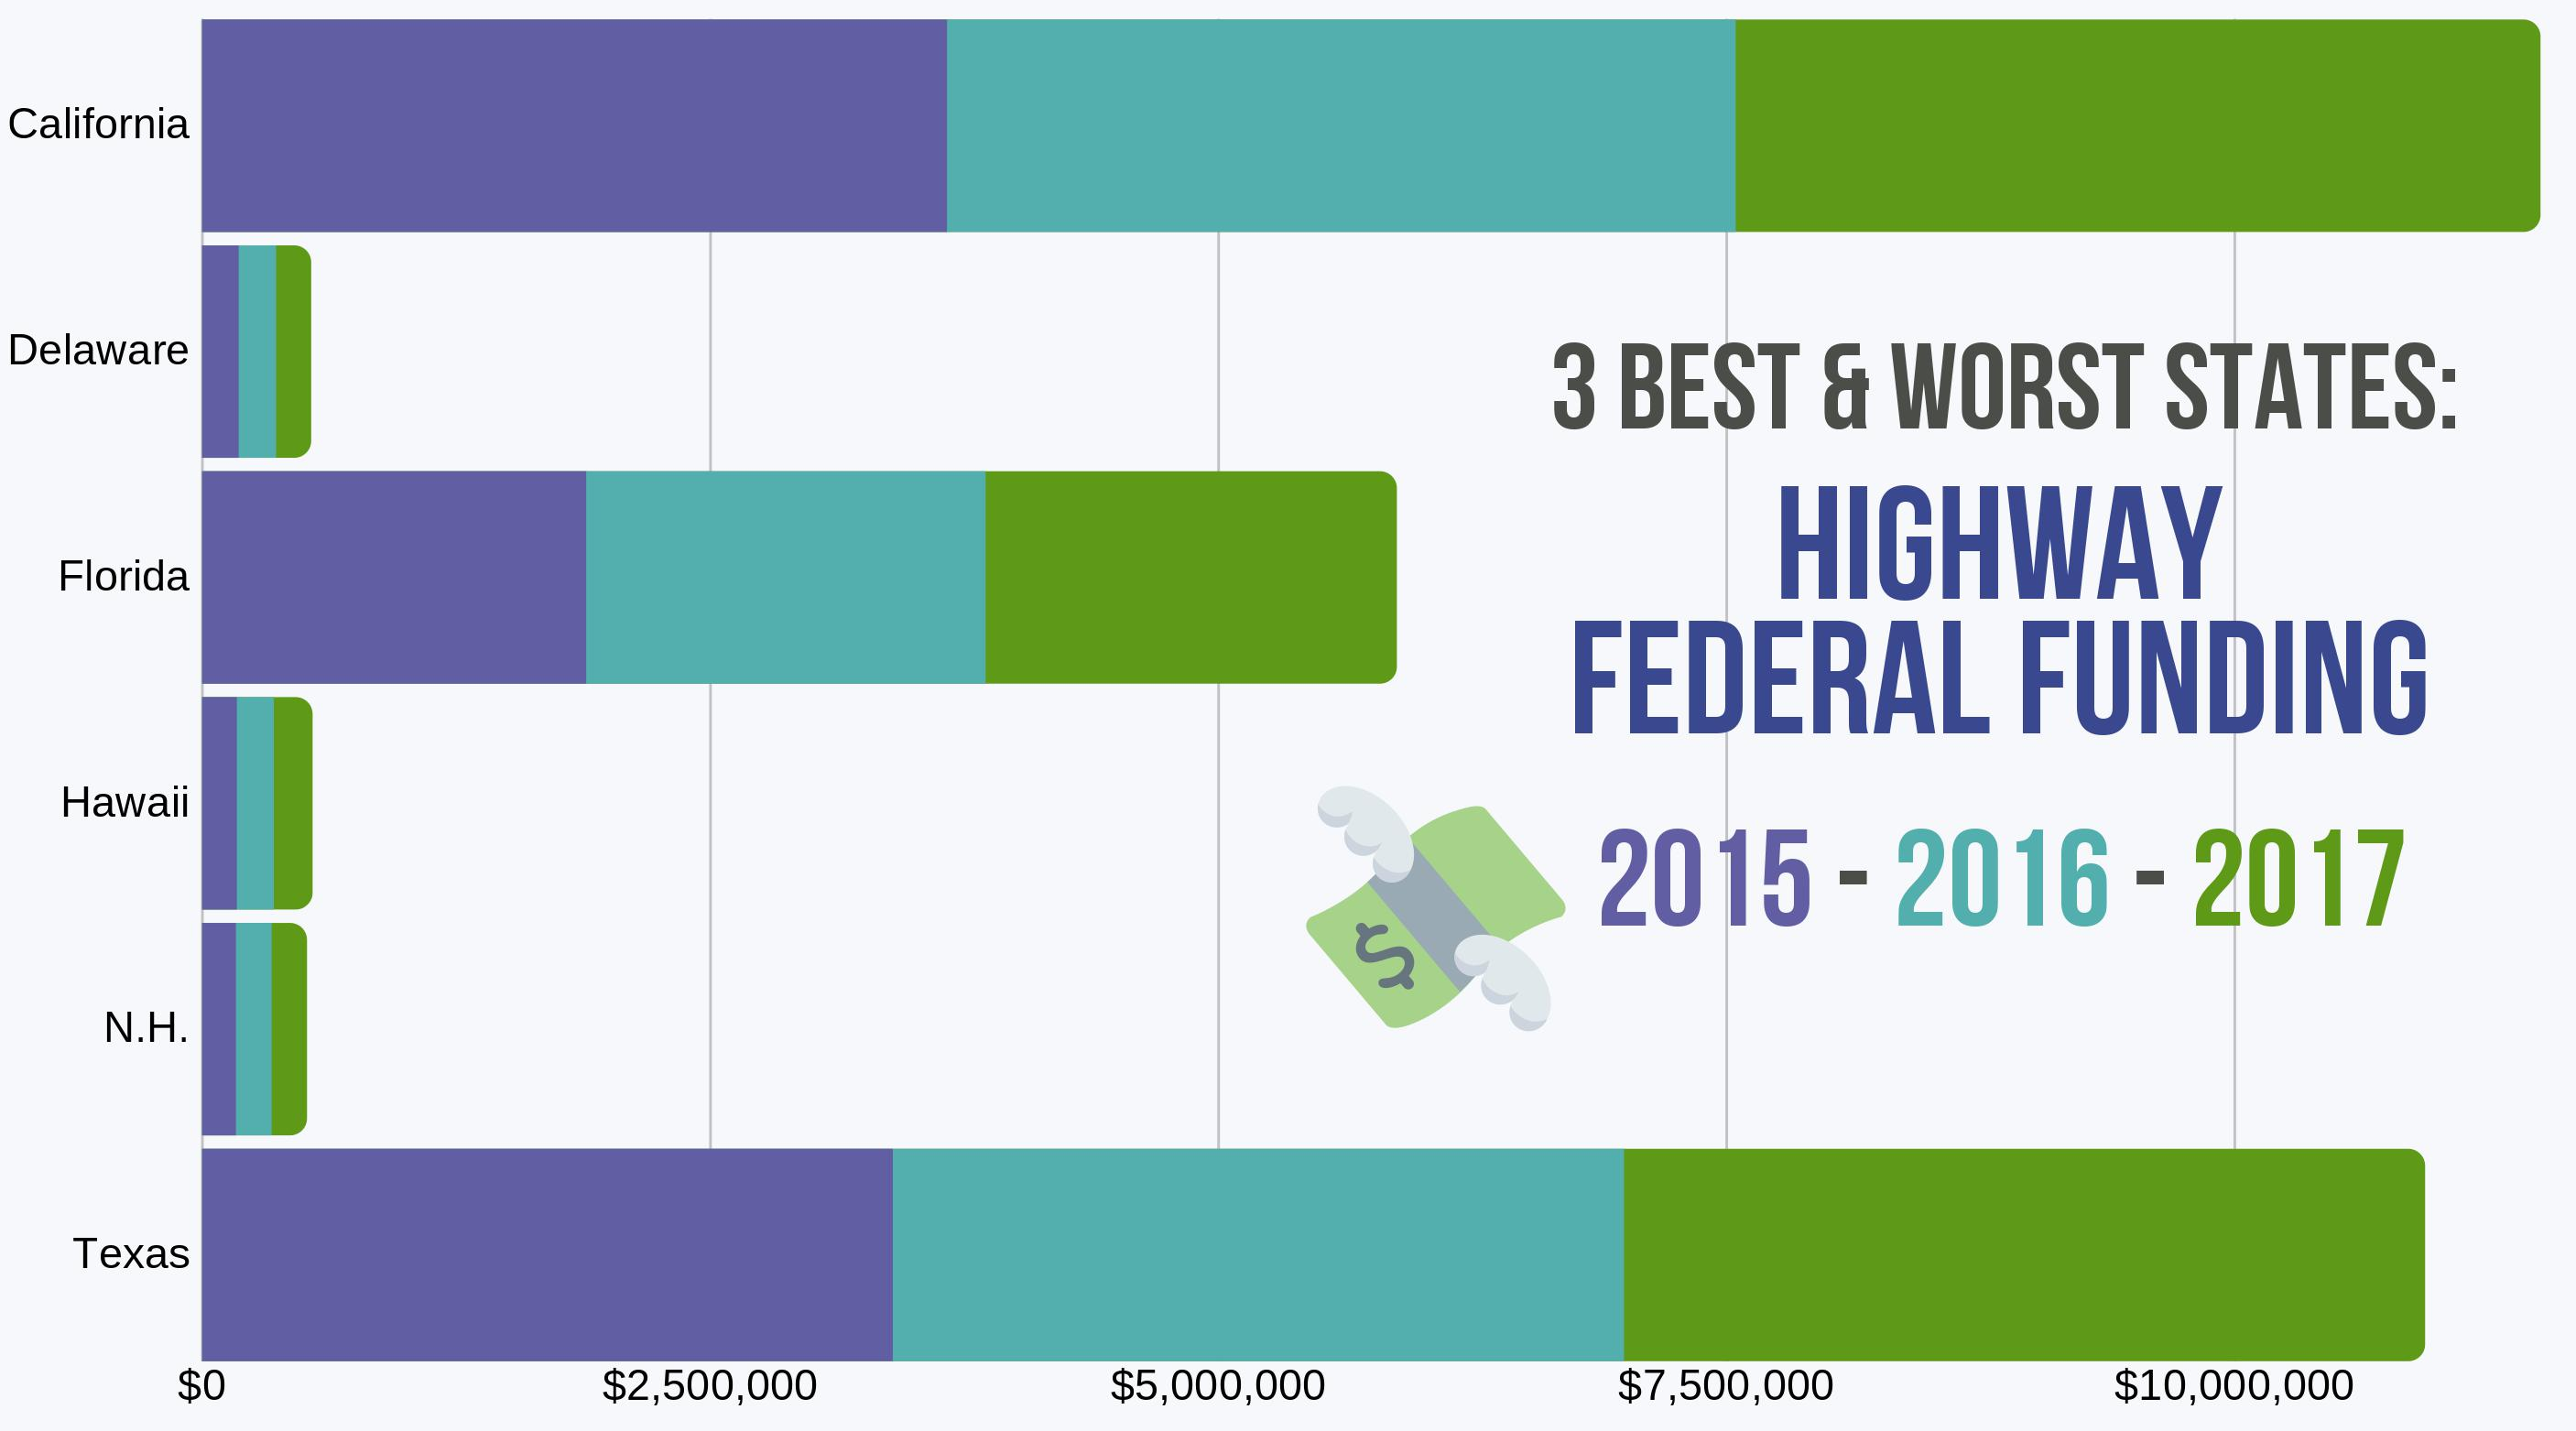 Highway Federal funding in 6 states from '15-'17